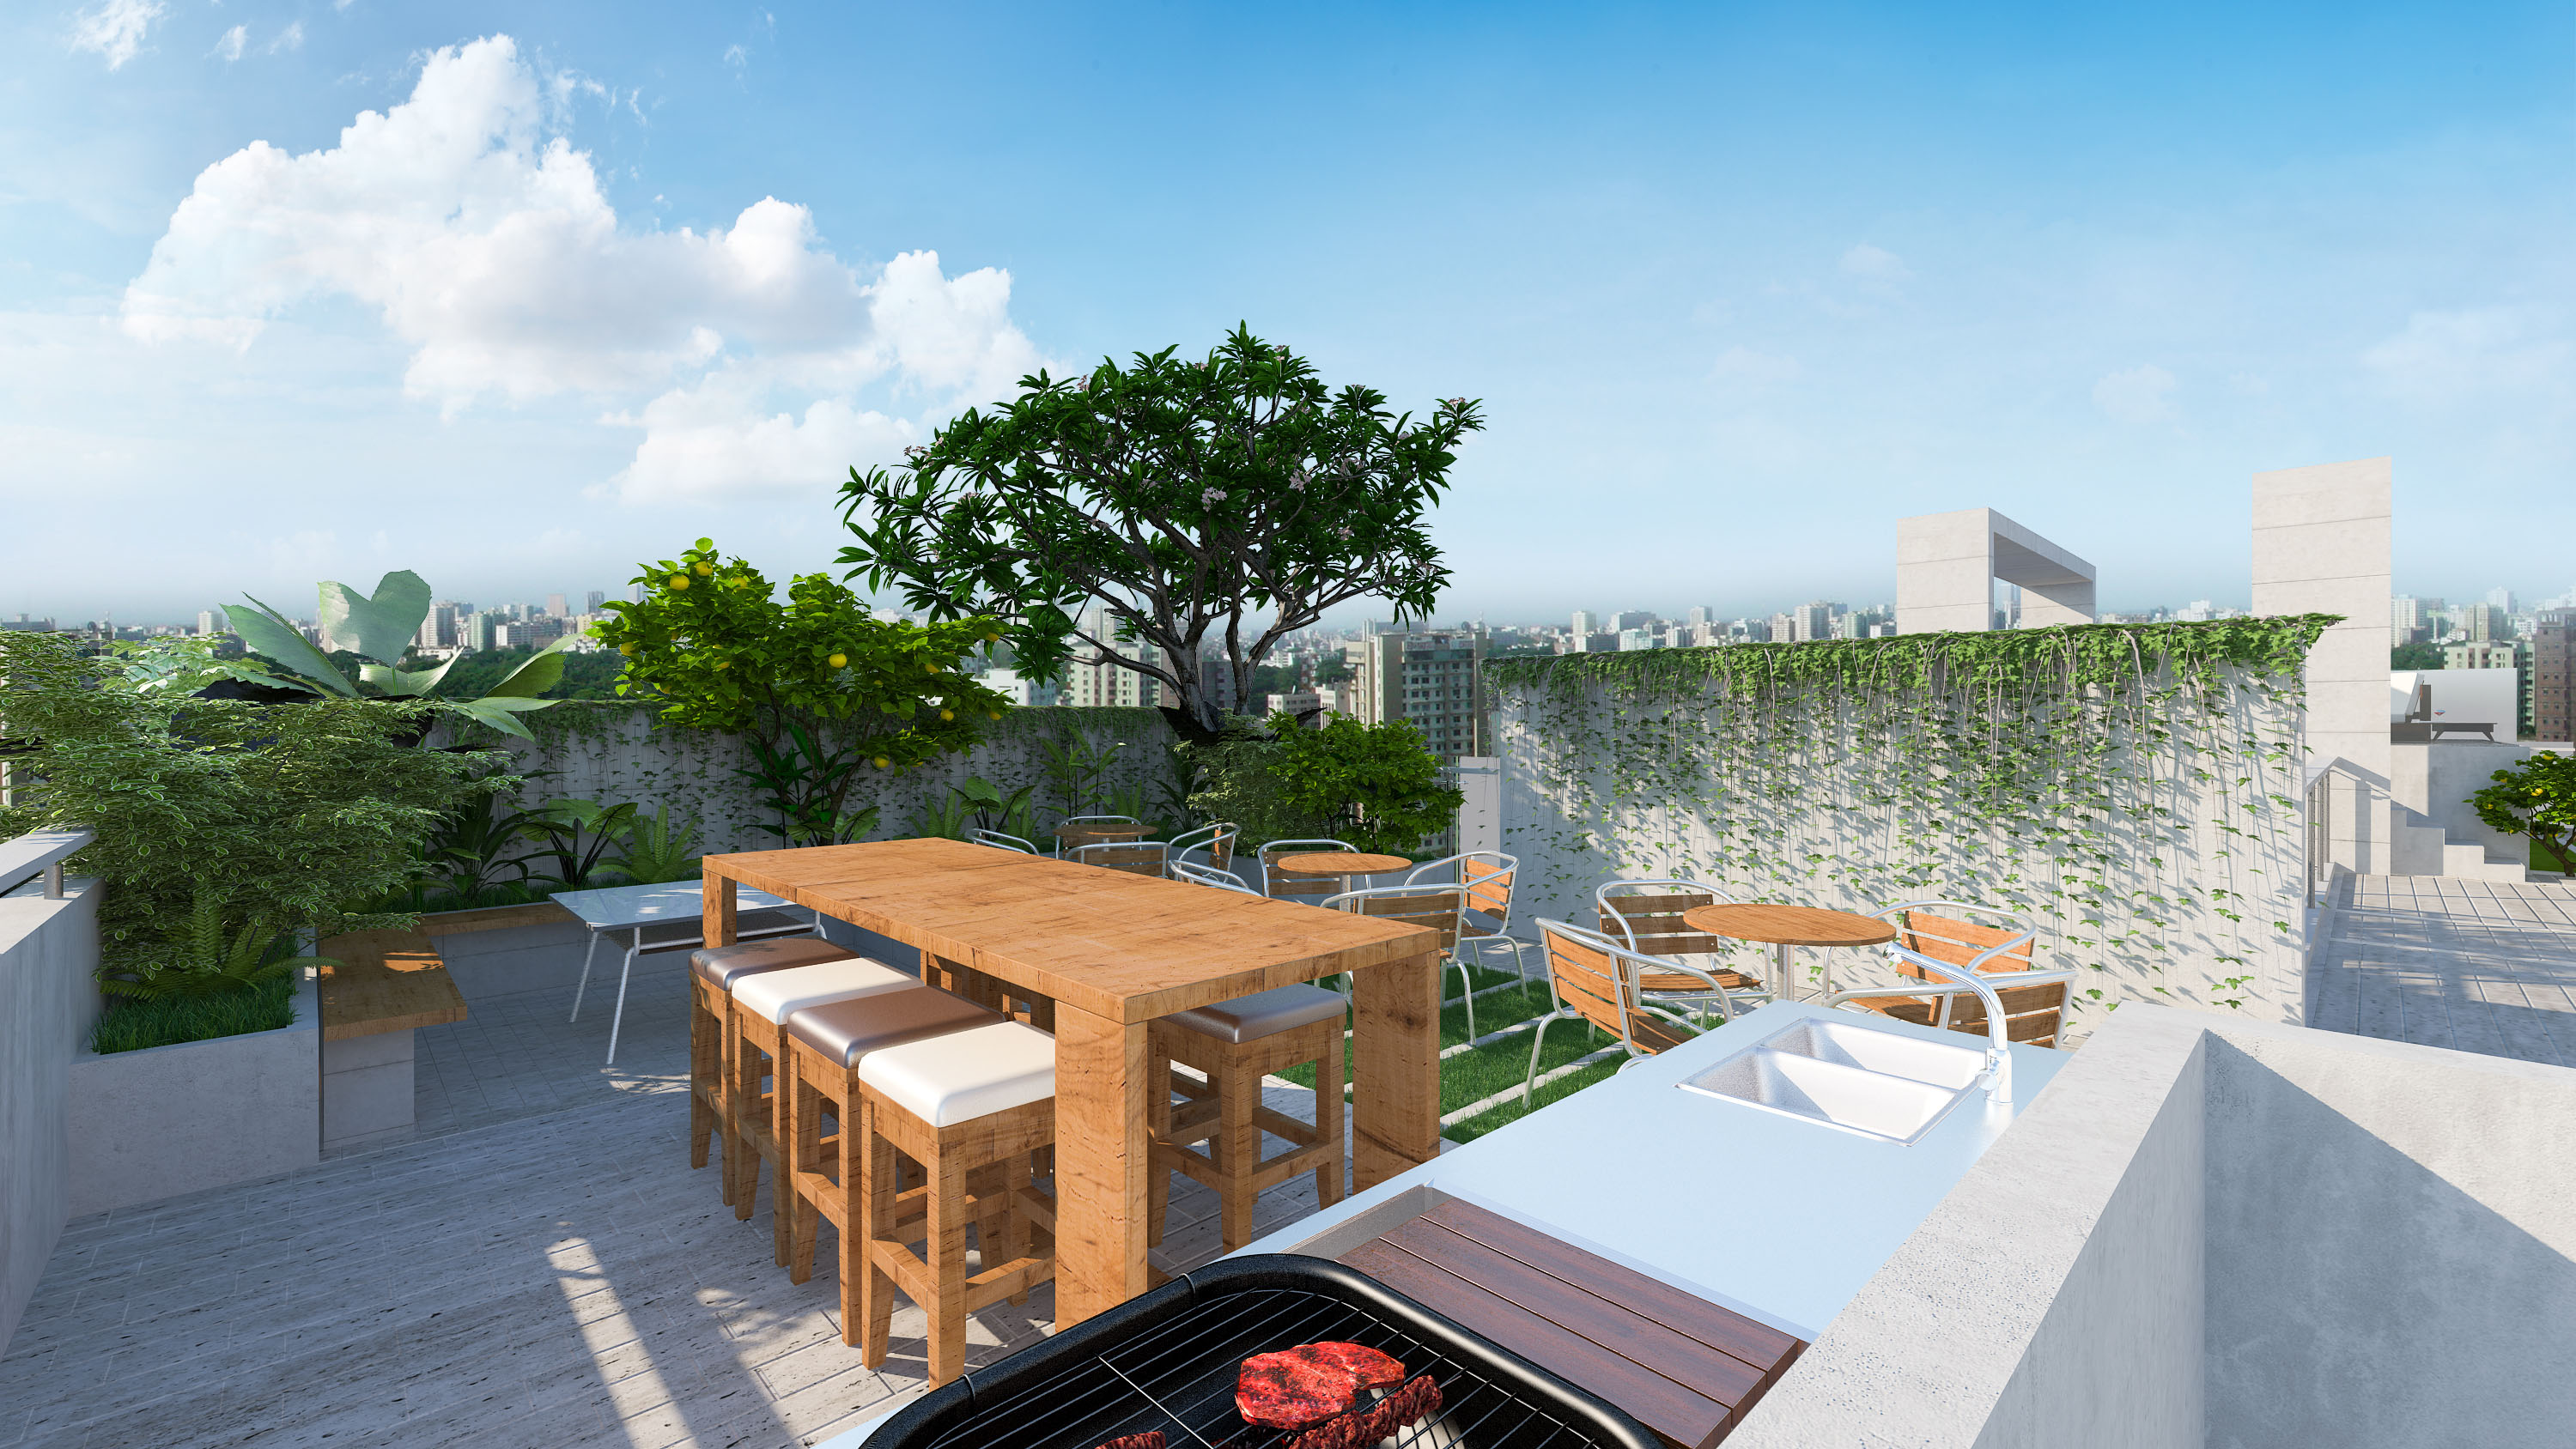 Photos of Assure Oasis Roof Garden